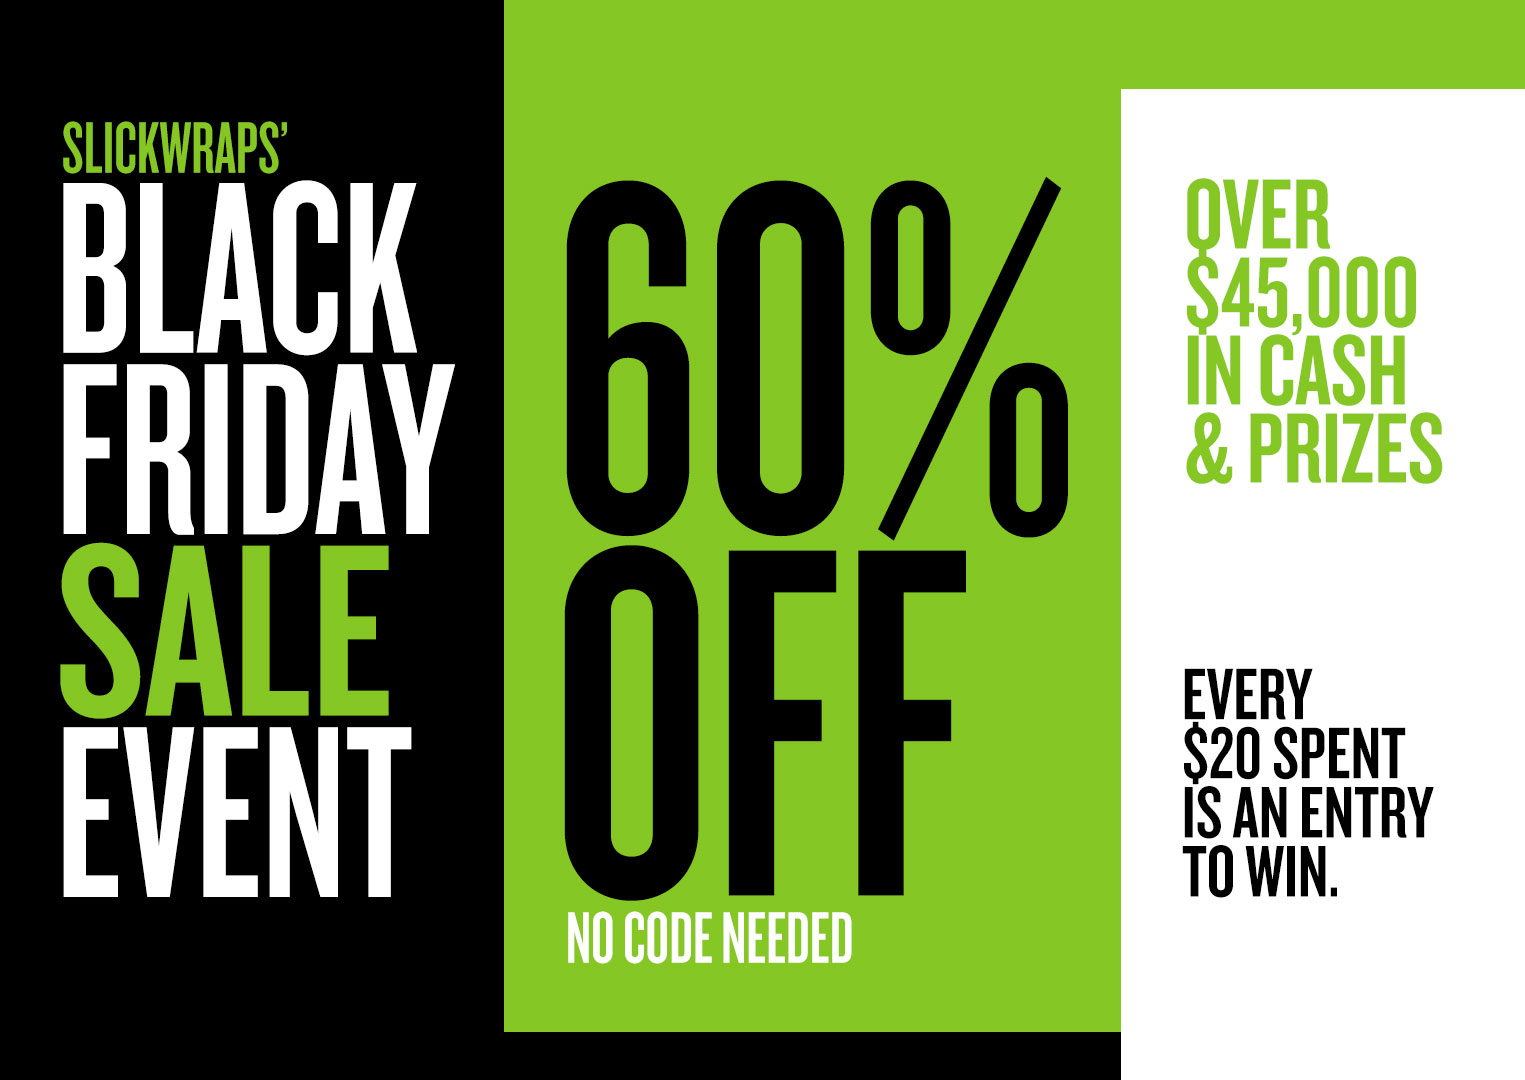 DON'T BE A TURKEY. GET YOUR BLACK FRIDAY SHOPPING STARTED THURSDAY